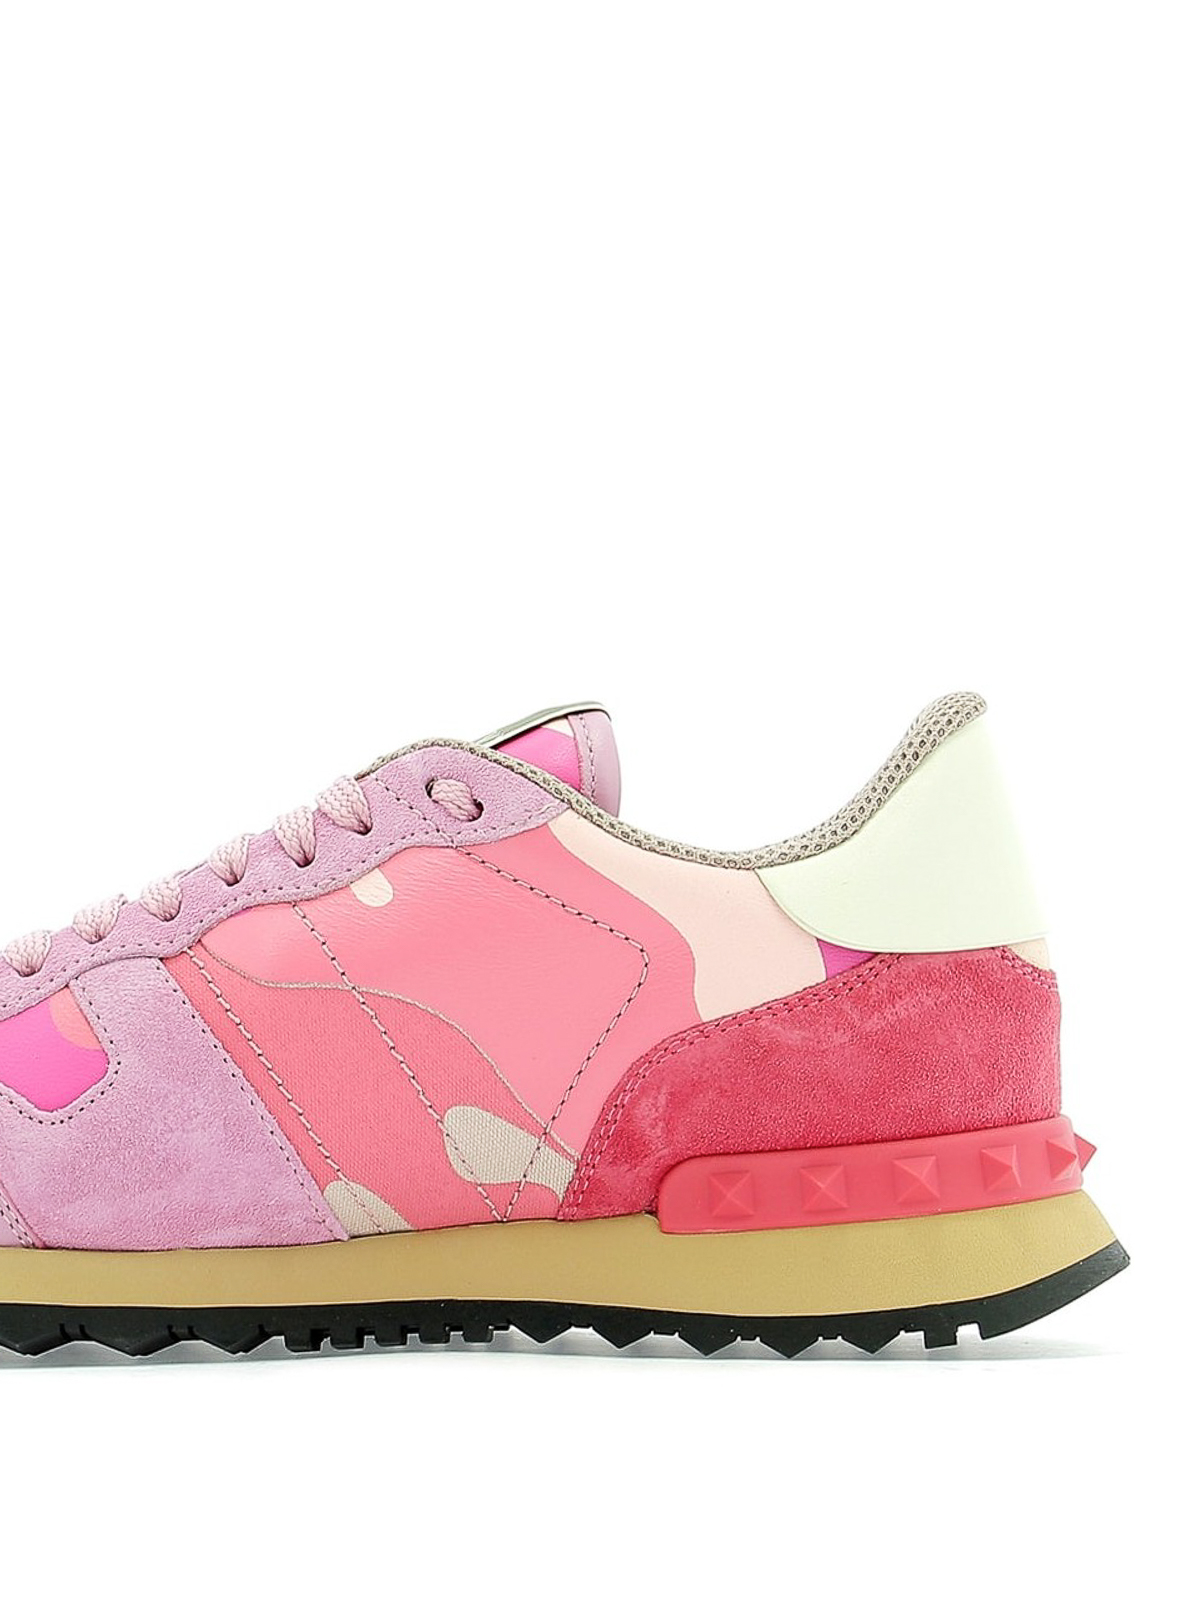 606a246f40291 iKRIX VALENTINO GARAVANI: trainers - Rockrunner camouflage pink sneakers